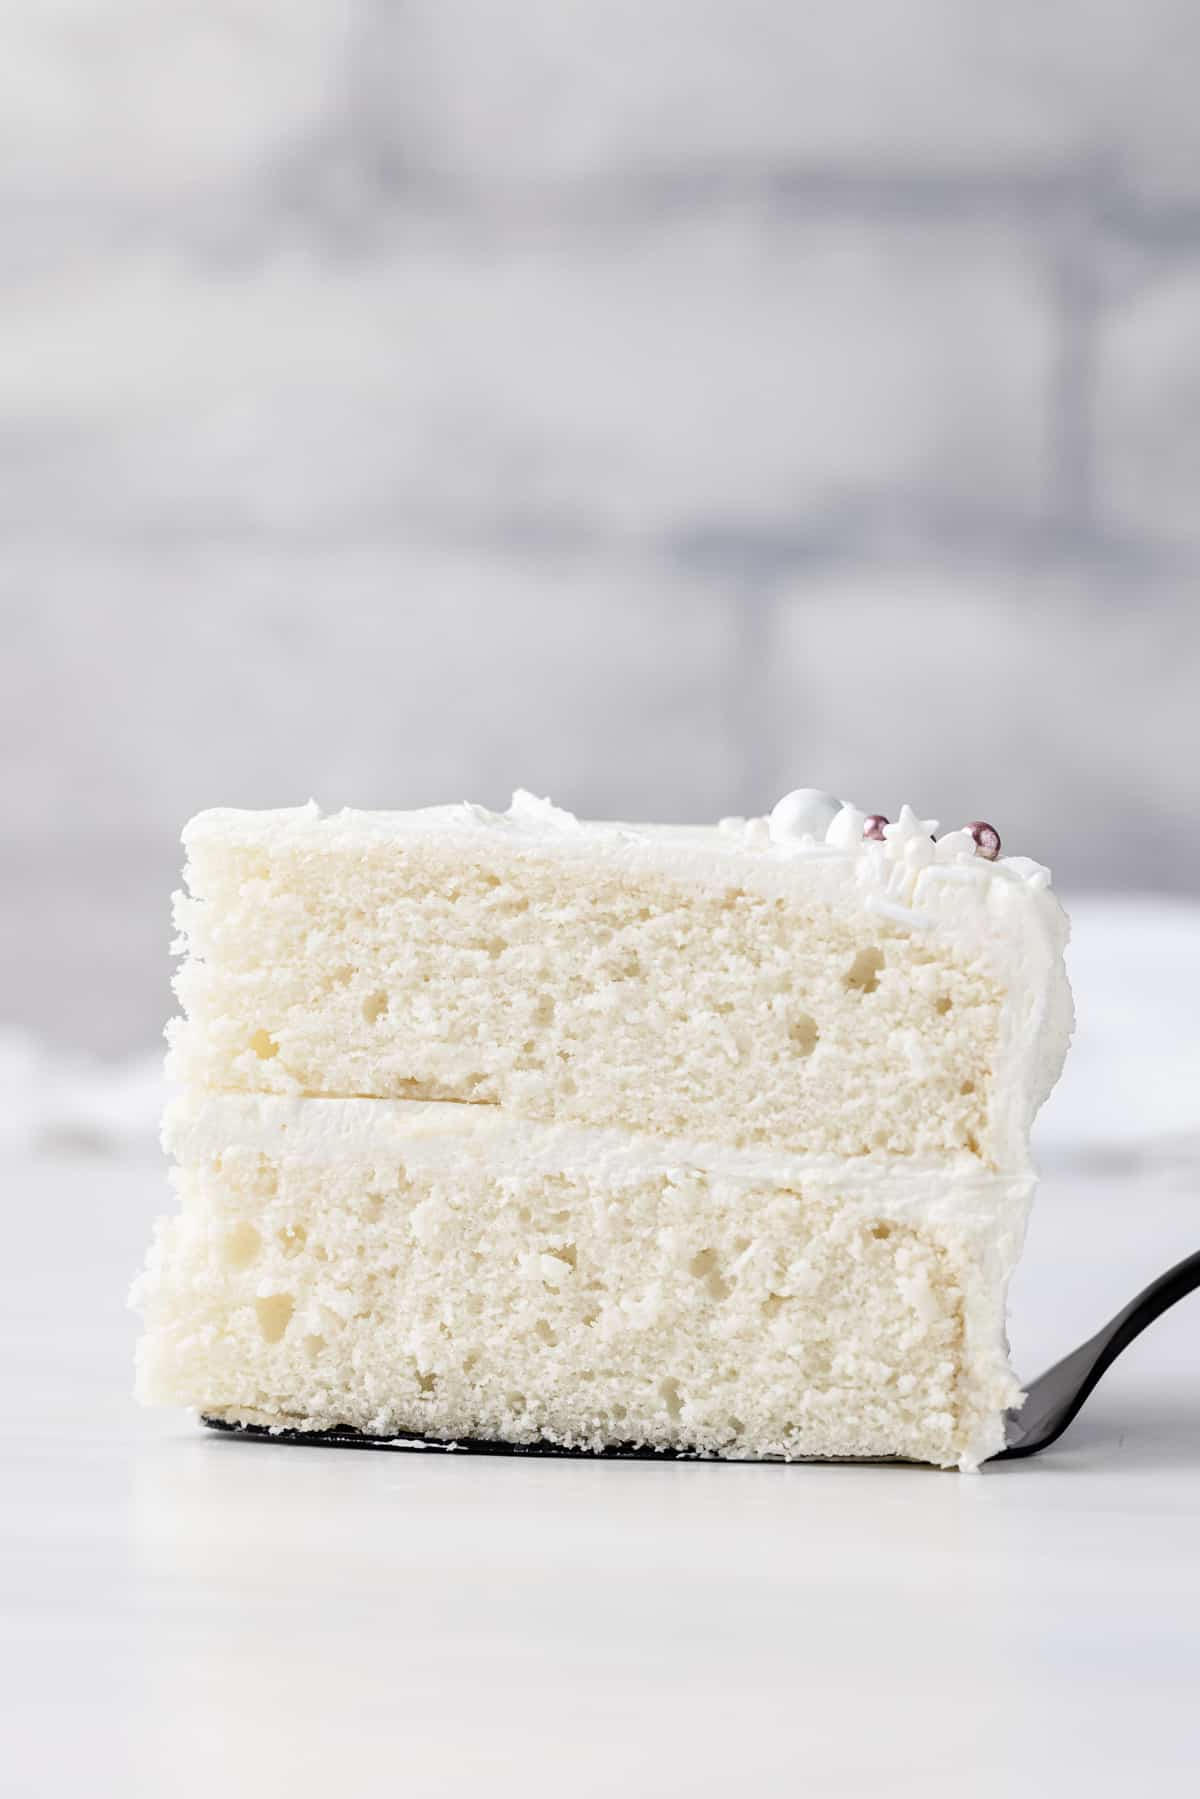 The best white cake on a grey slate cake stand with a slice of cake being taken out.